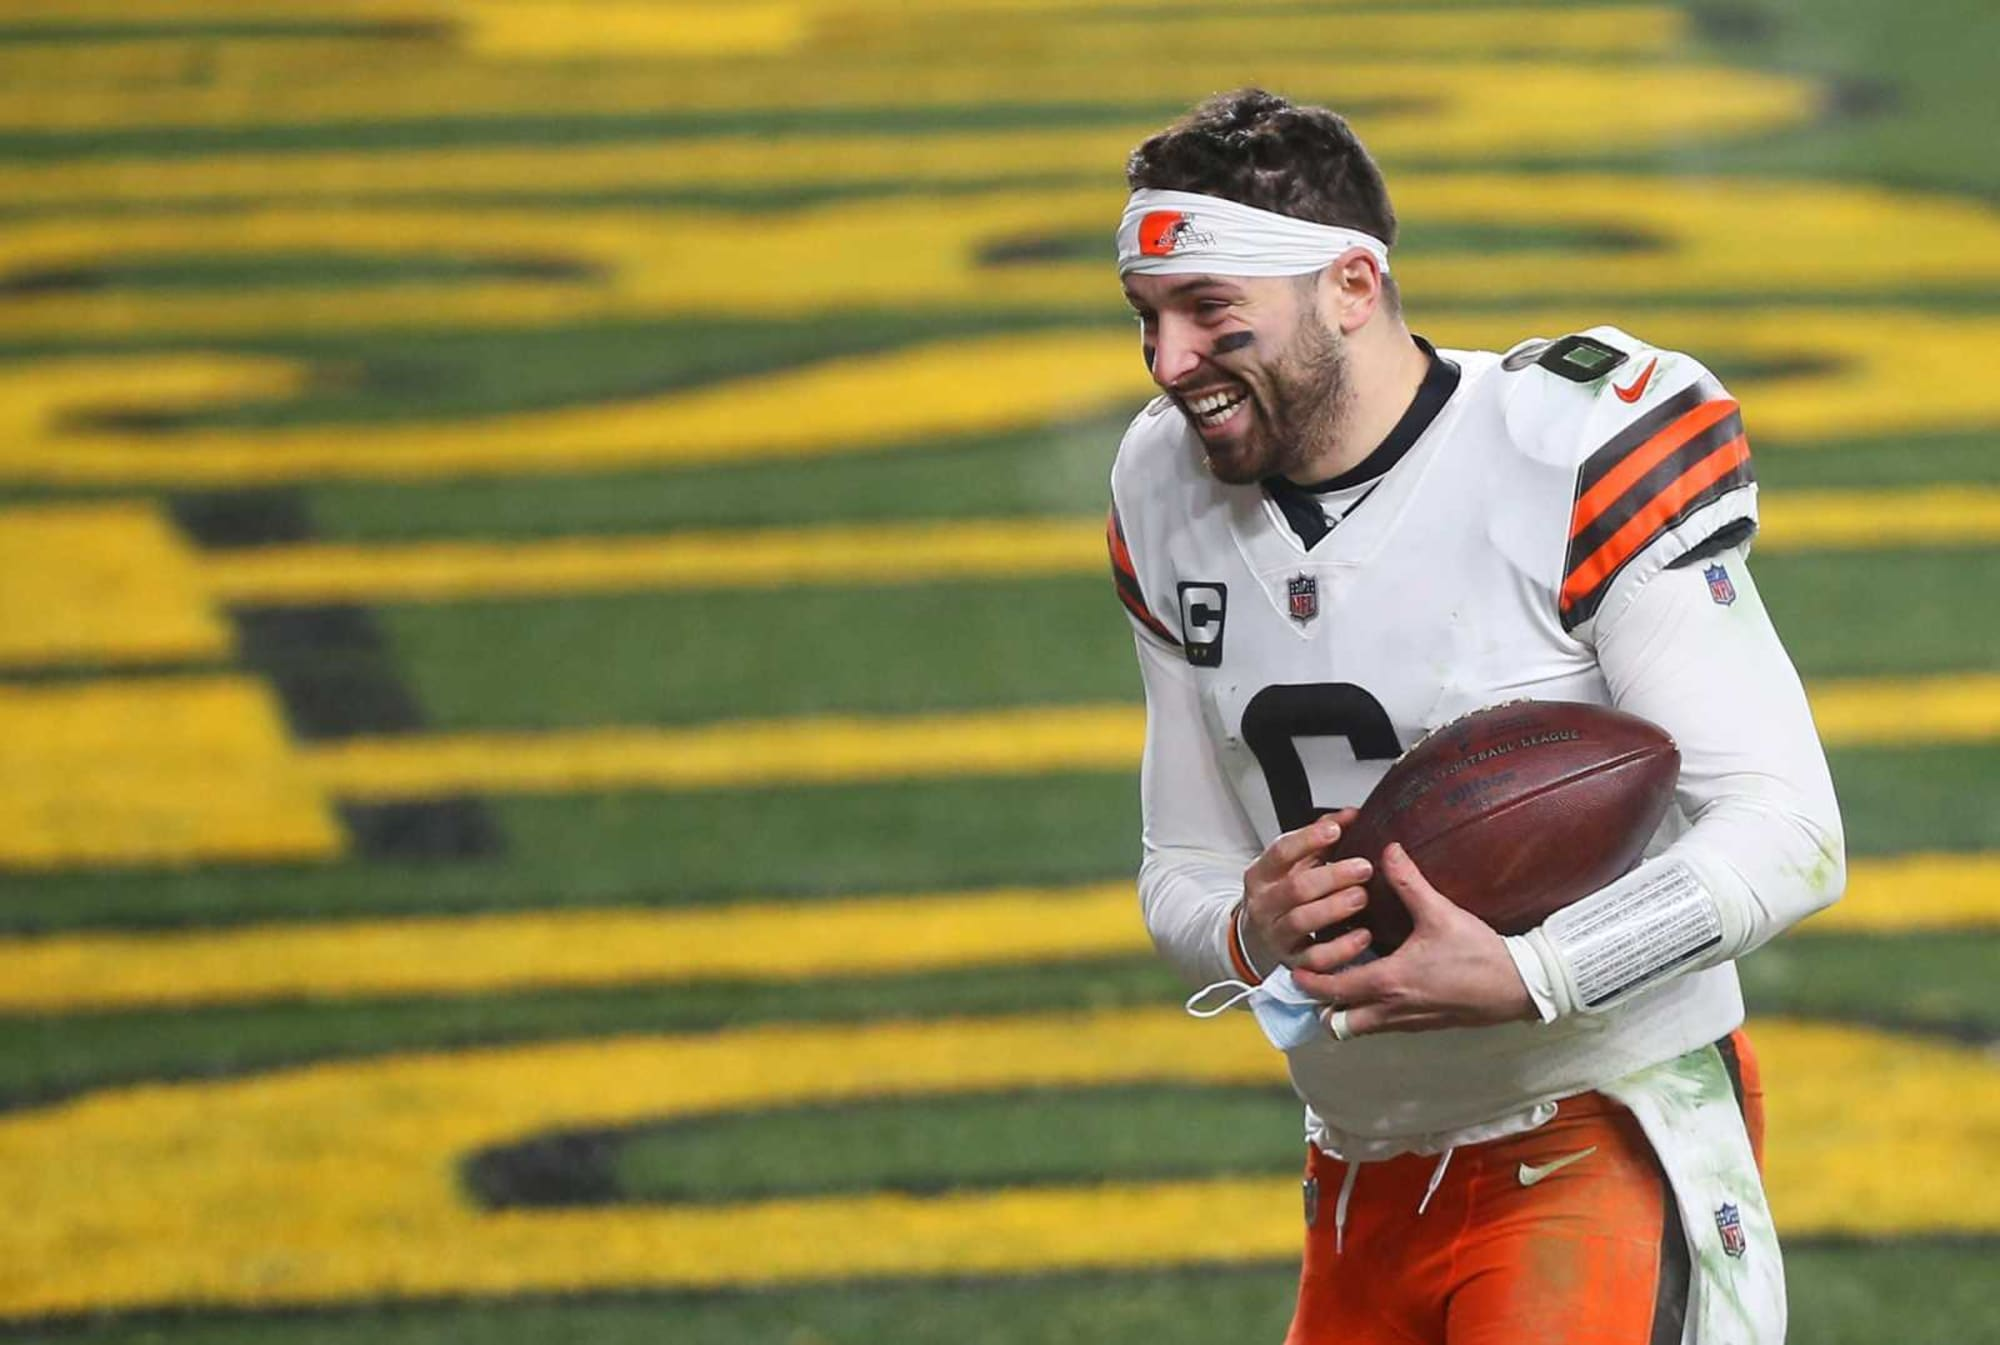 Browns news: Baker Mayfield tweets insane story of seeing a UFO, Colin Cowherd responds